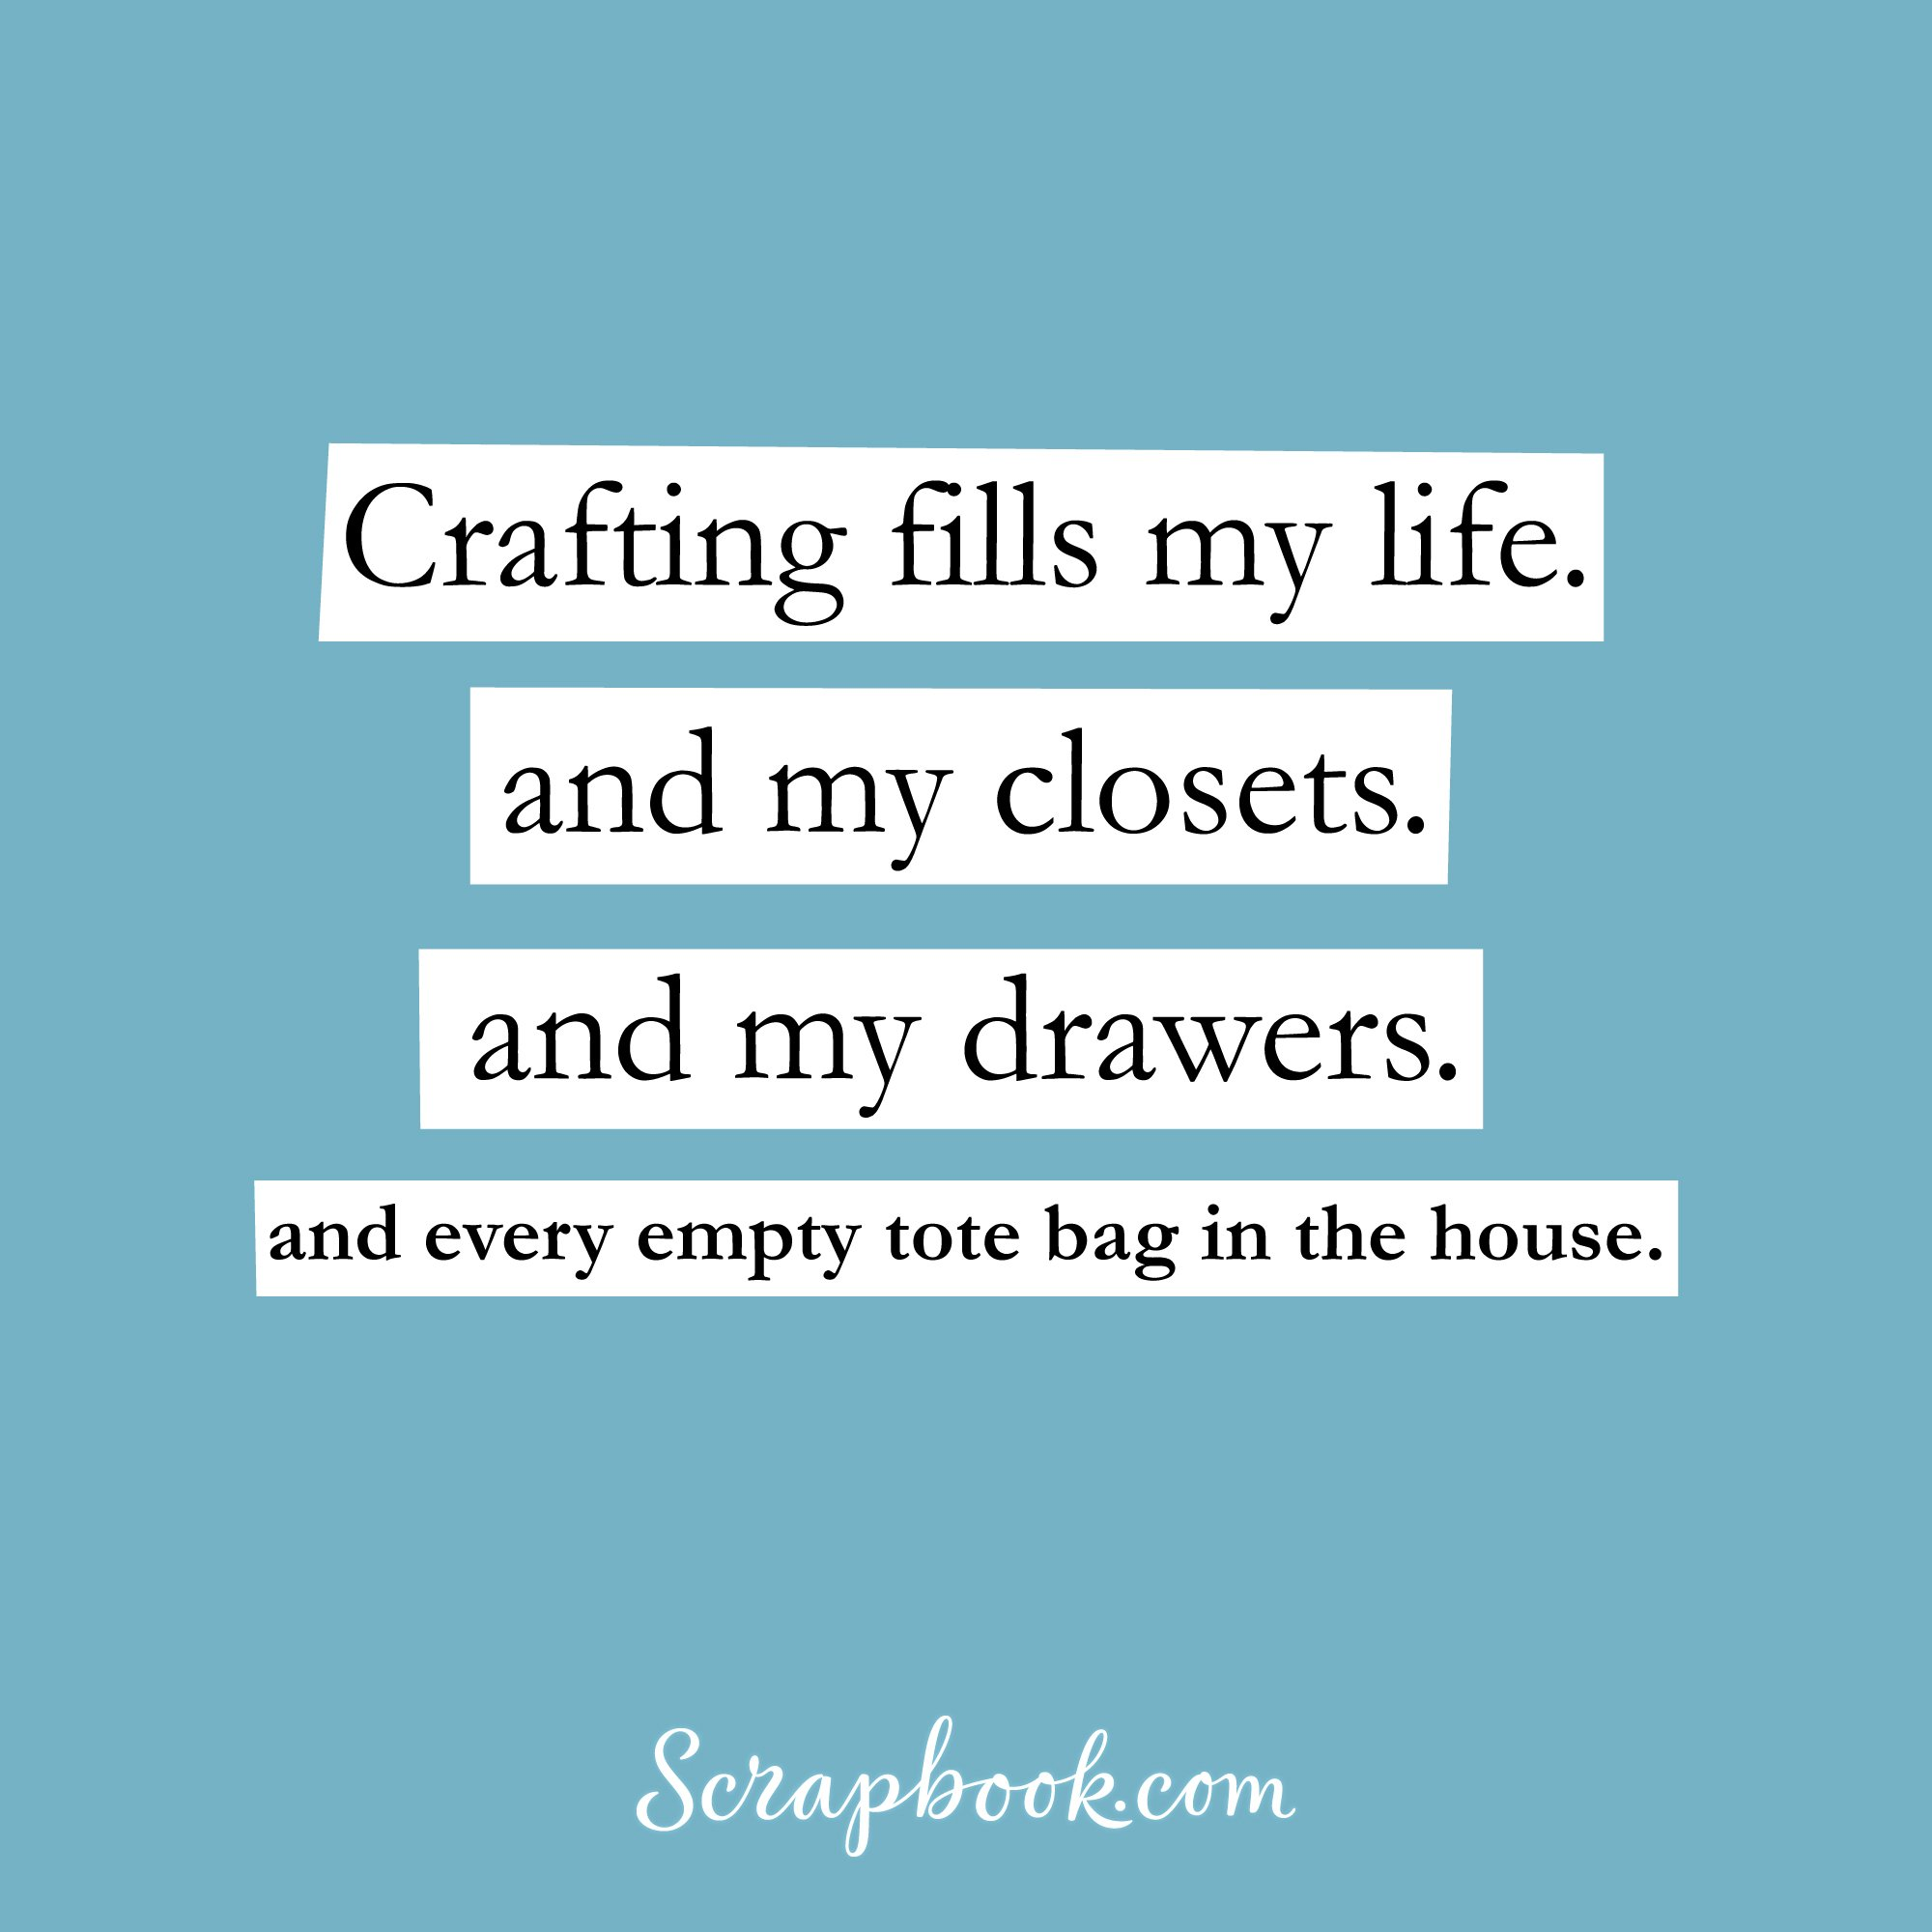 Crafting fills my life. And my closets. And my drawers. And every empty tote bag in the house.